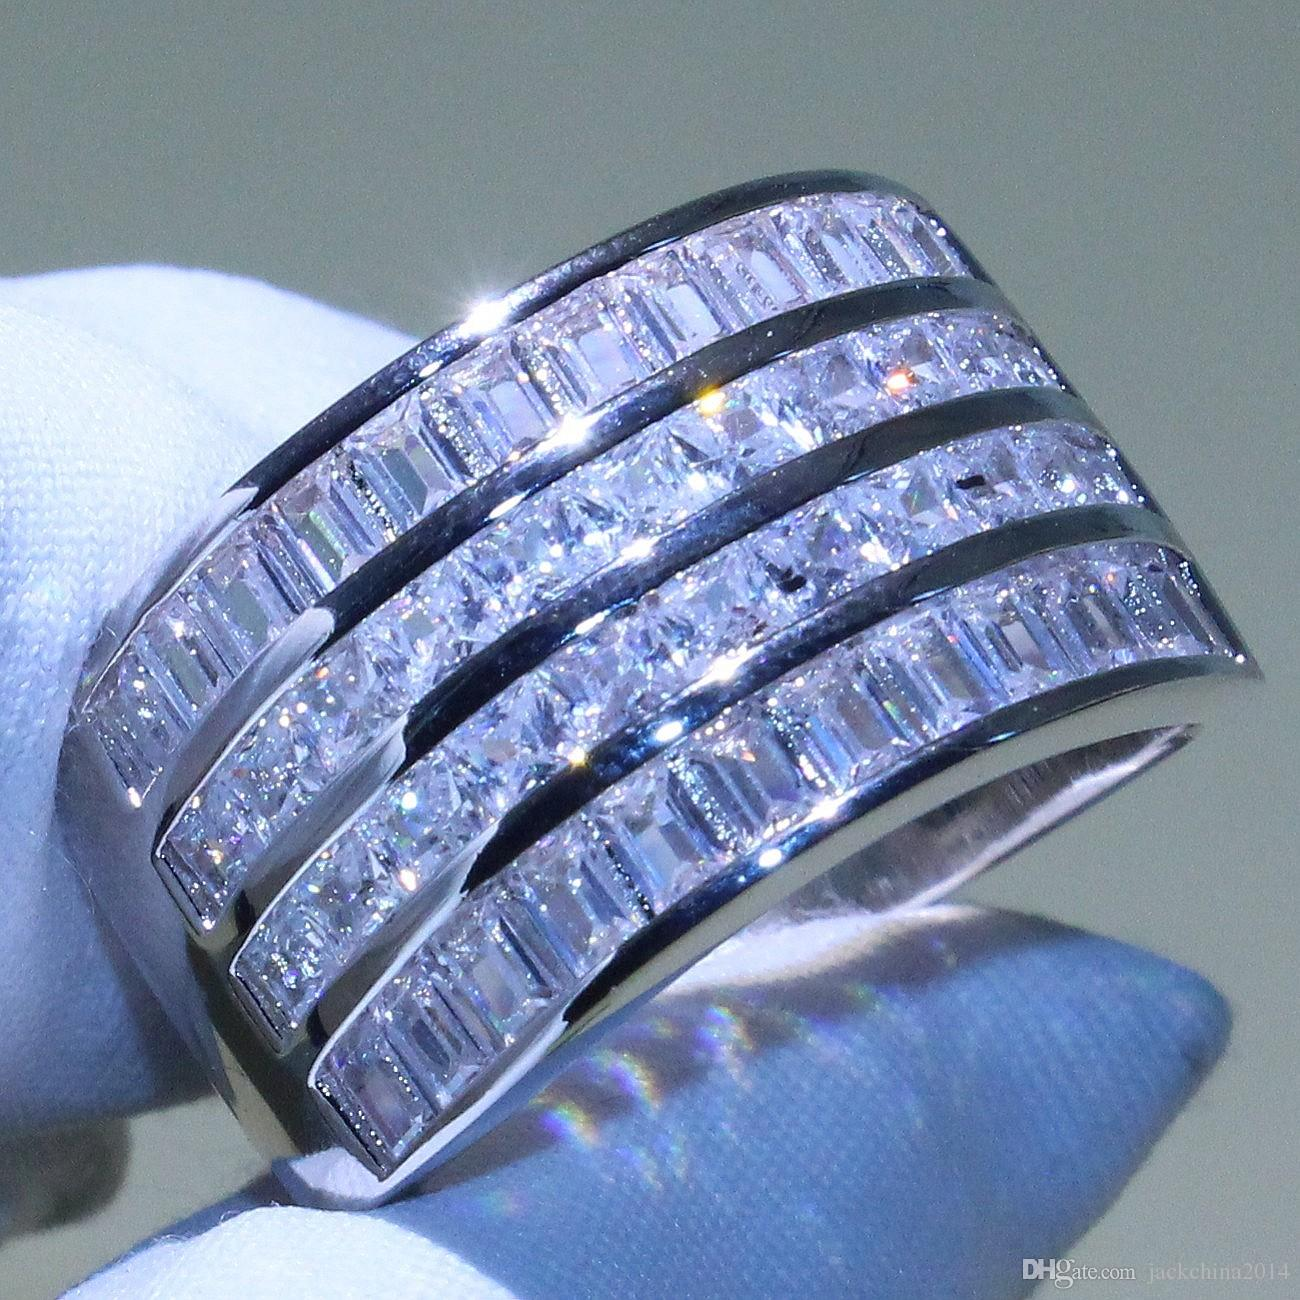 It is a photo of Wholesale Wide Diamond Wedding Bands - Buy Cheap in Bulk from